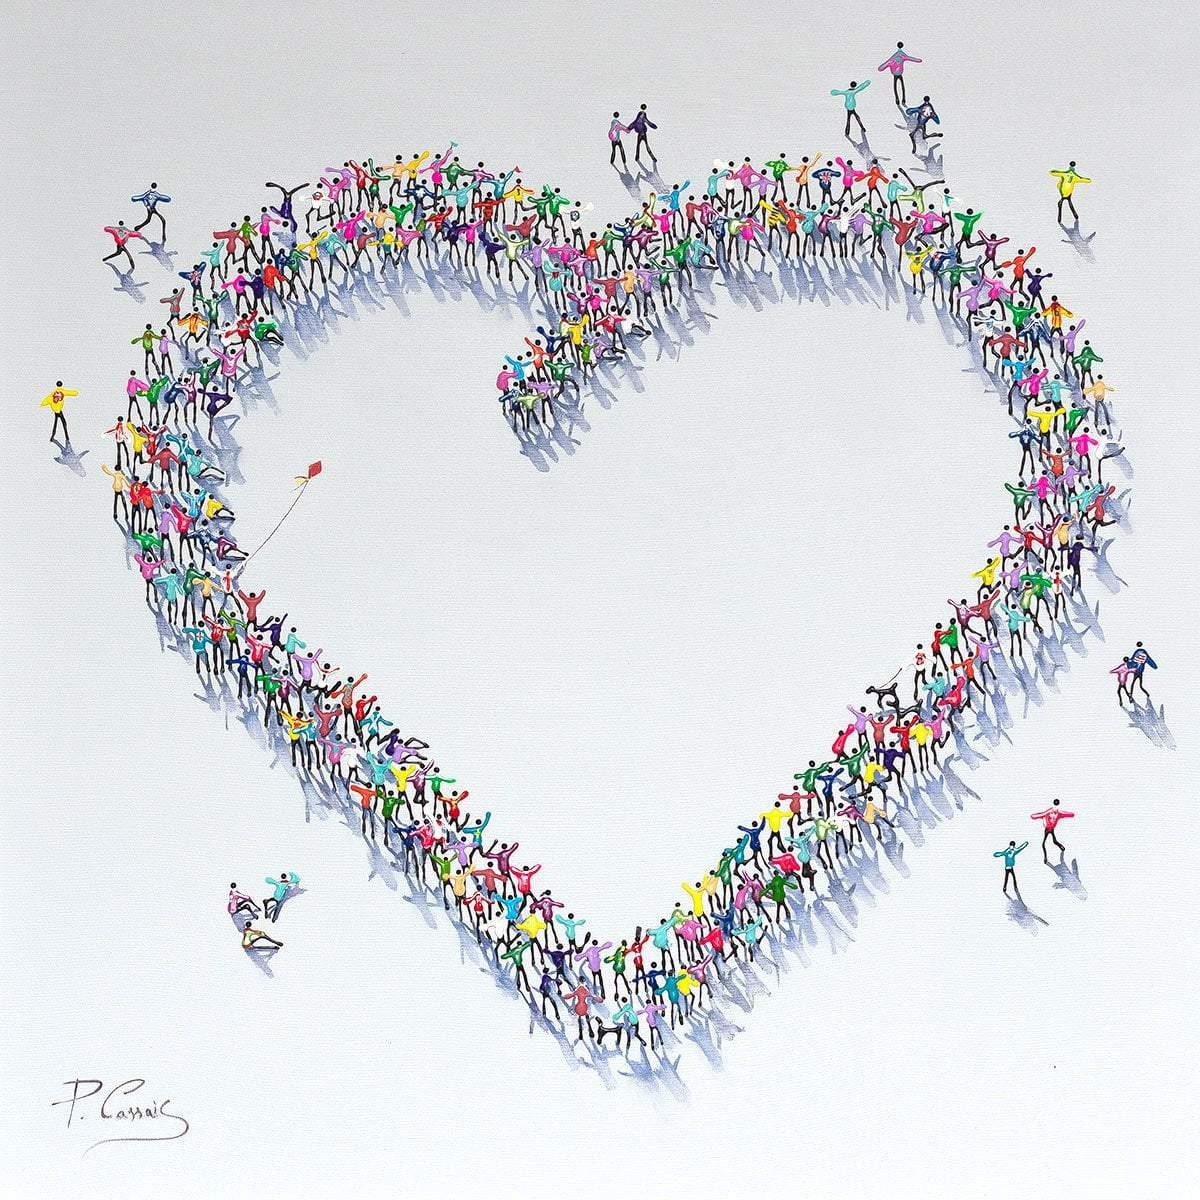 With Love - Original Paola Cassais Framed